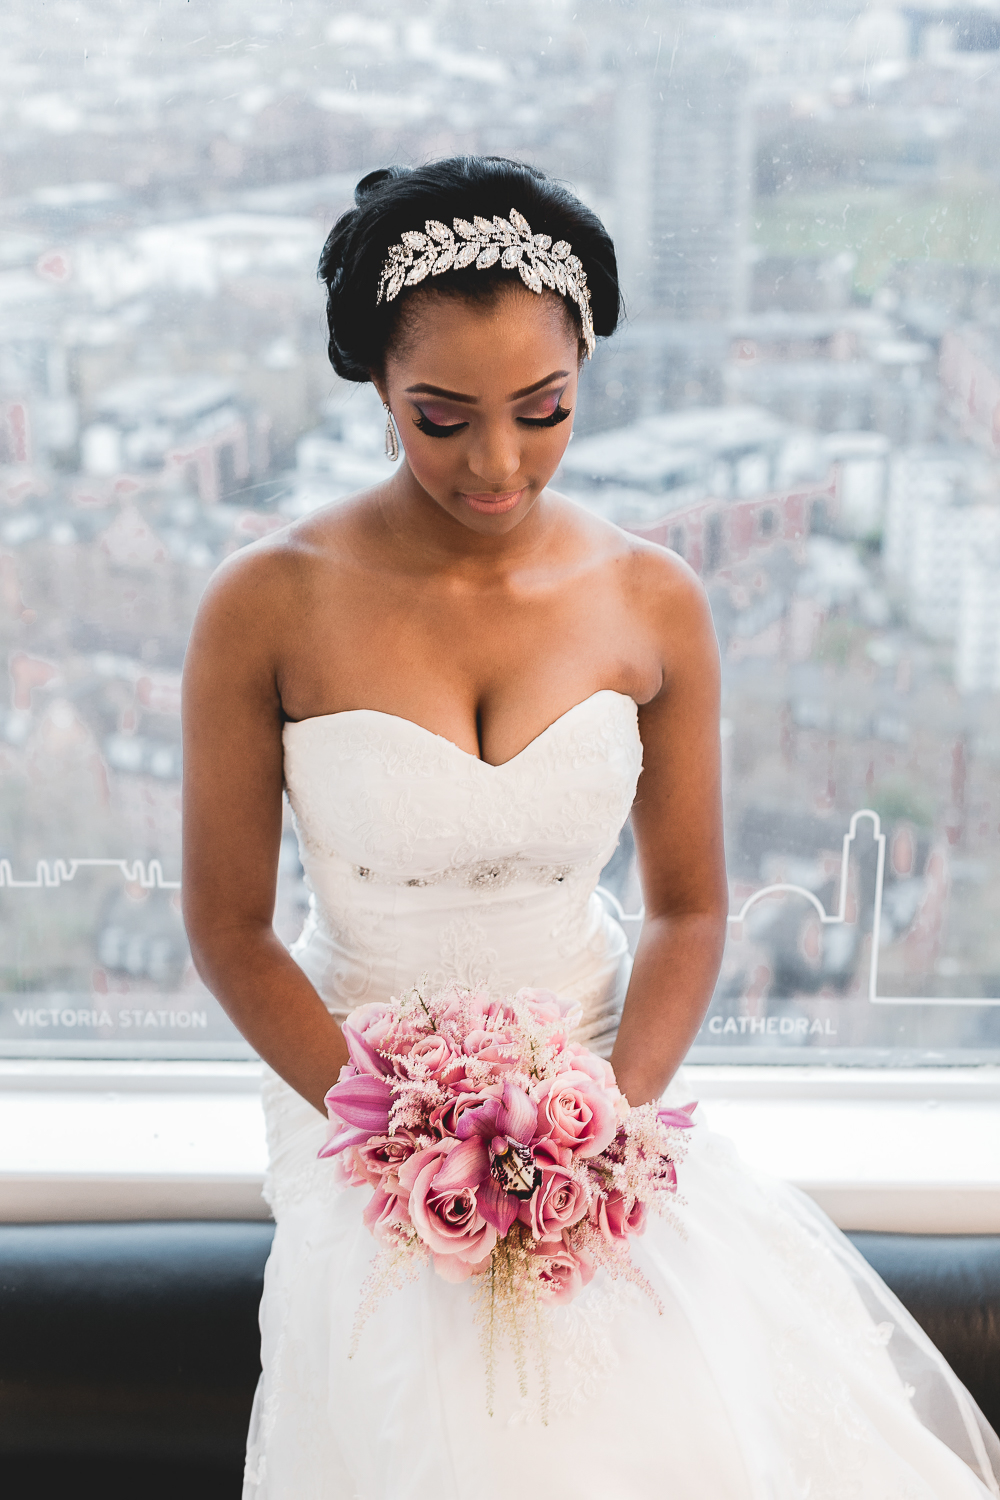 Wedding Photography at Altitude 360 London - Beatrici Photography-46